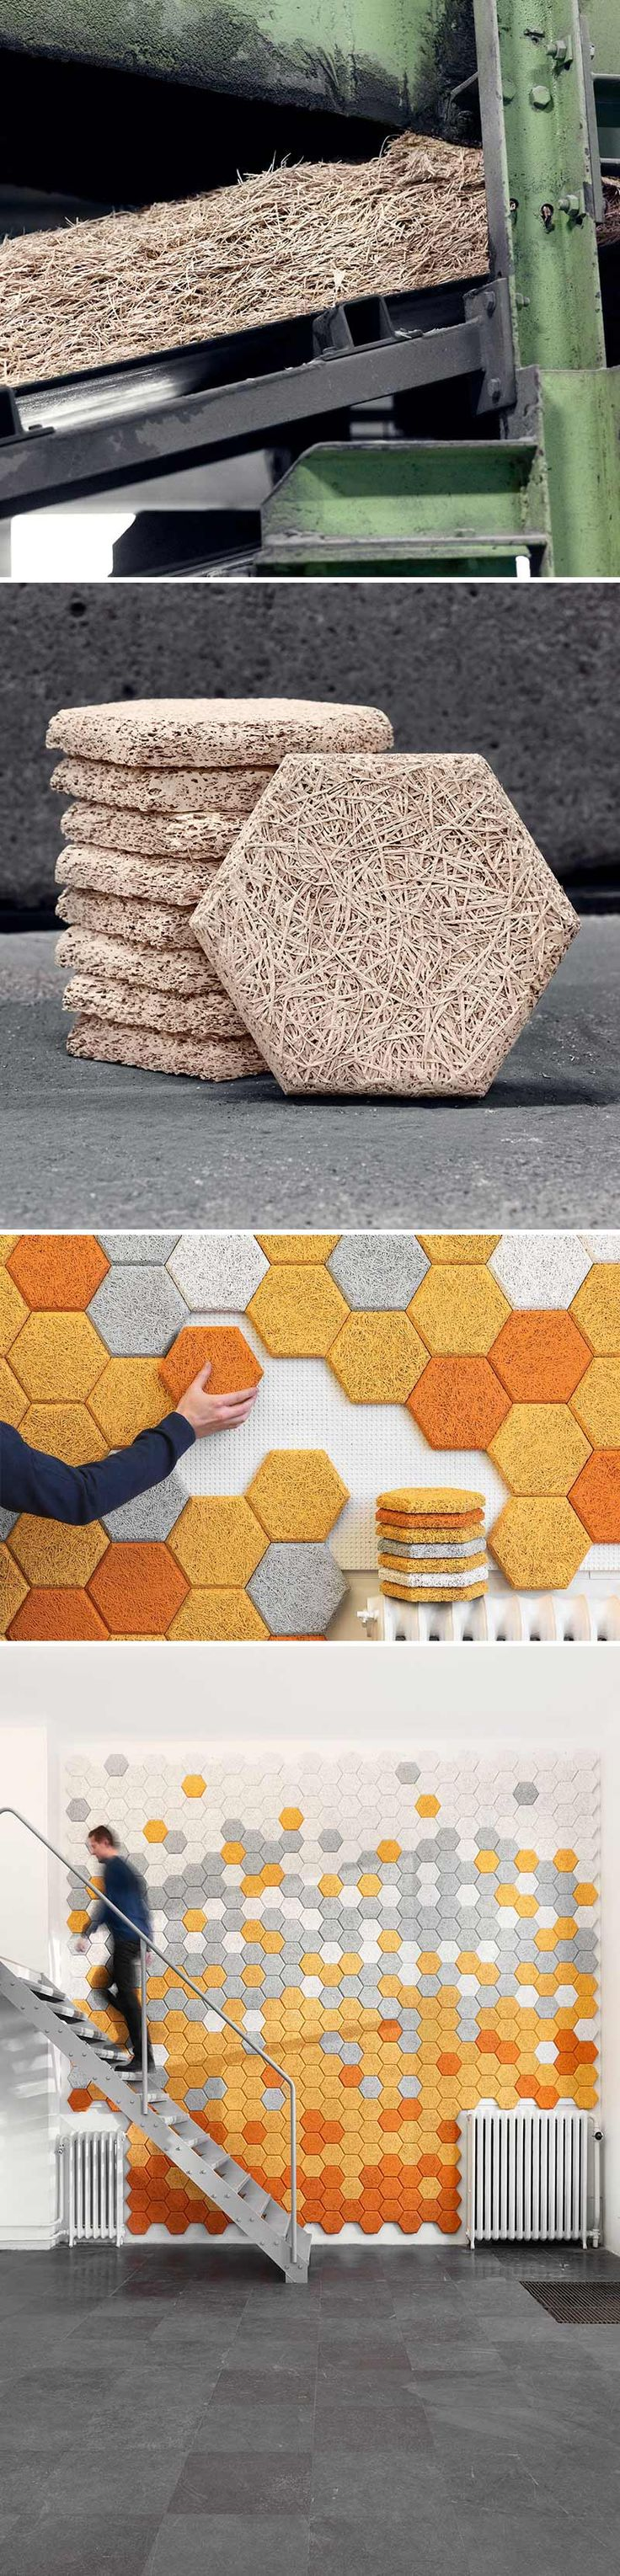 "Träullit Dekor is a progressive, environment-friendly material made from ""wood wool"", cement and water. It is recyclable and sound absorbent. The images show some of the processing involved with making the material as well as the end result! #modern #modular #hexagon"